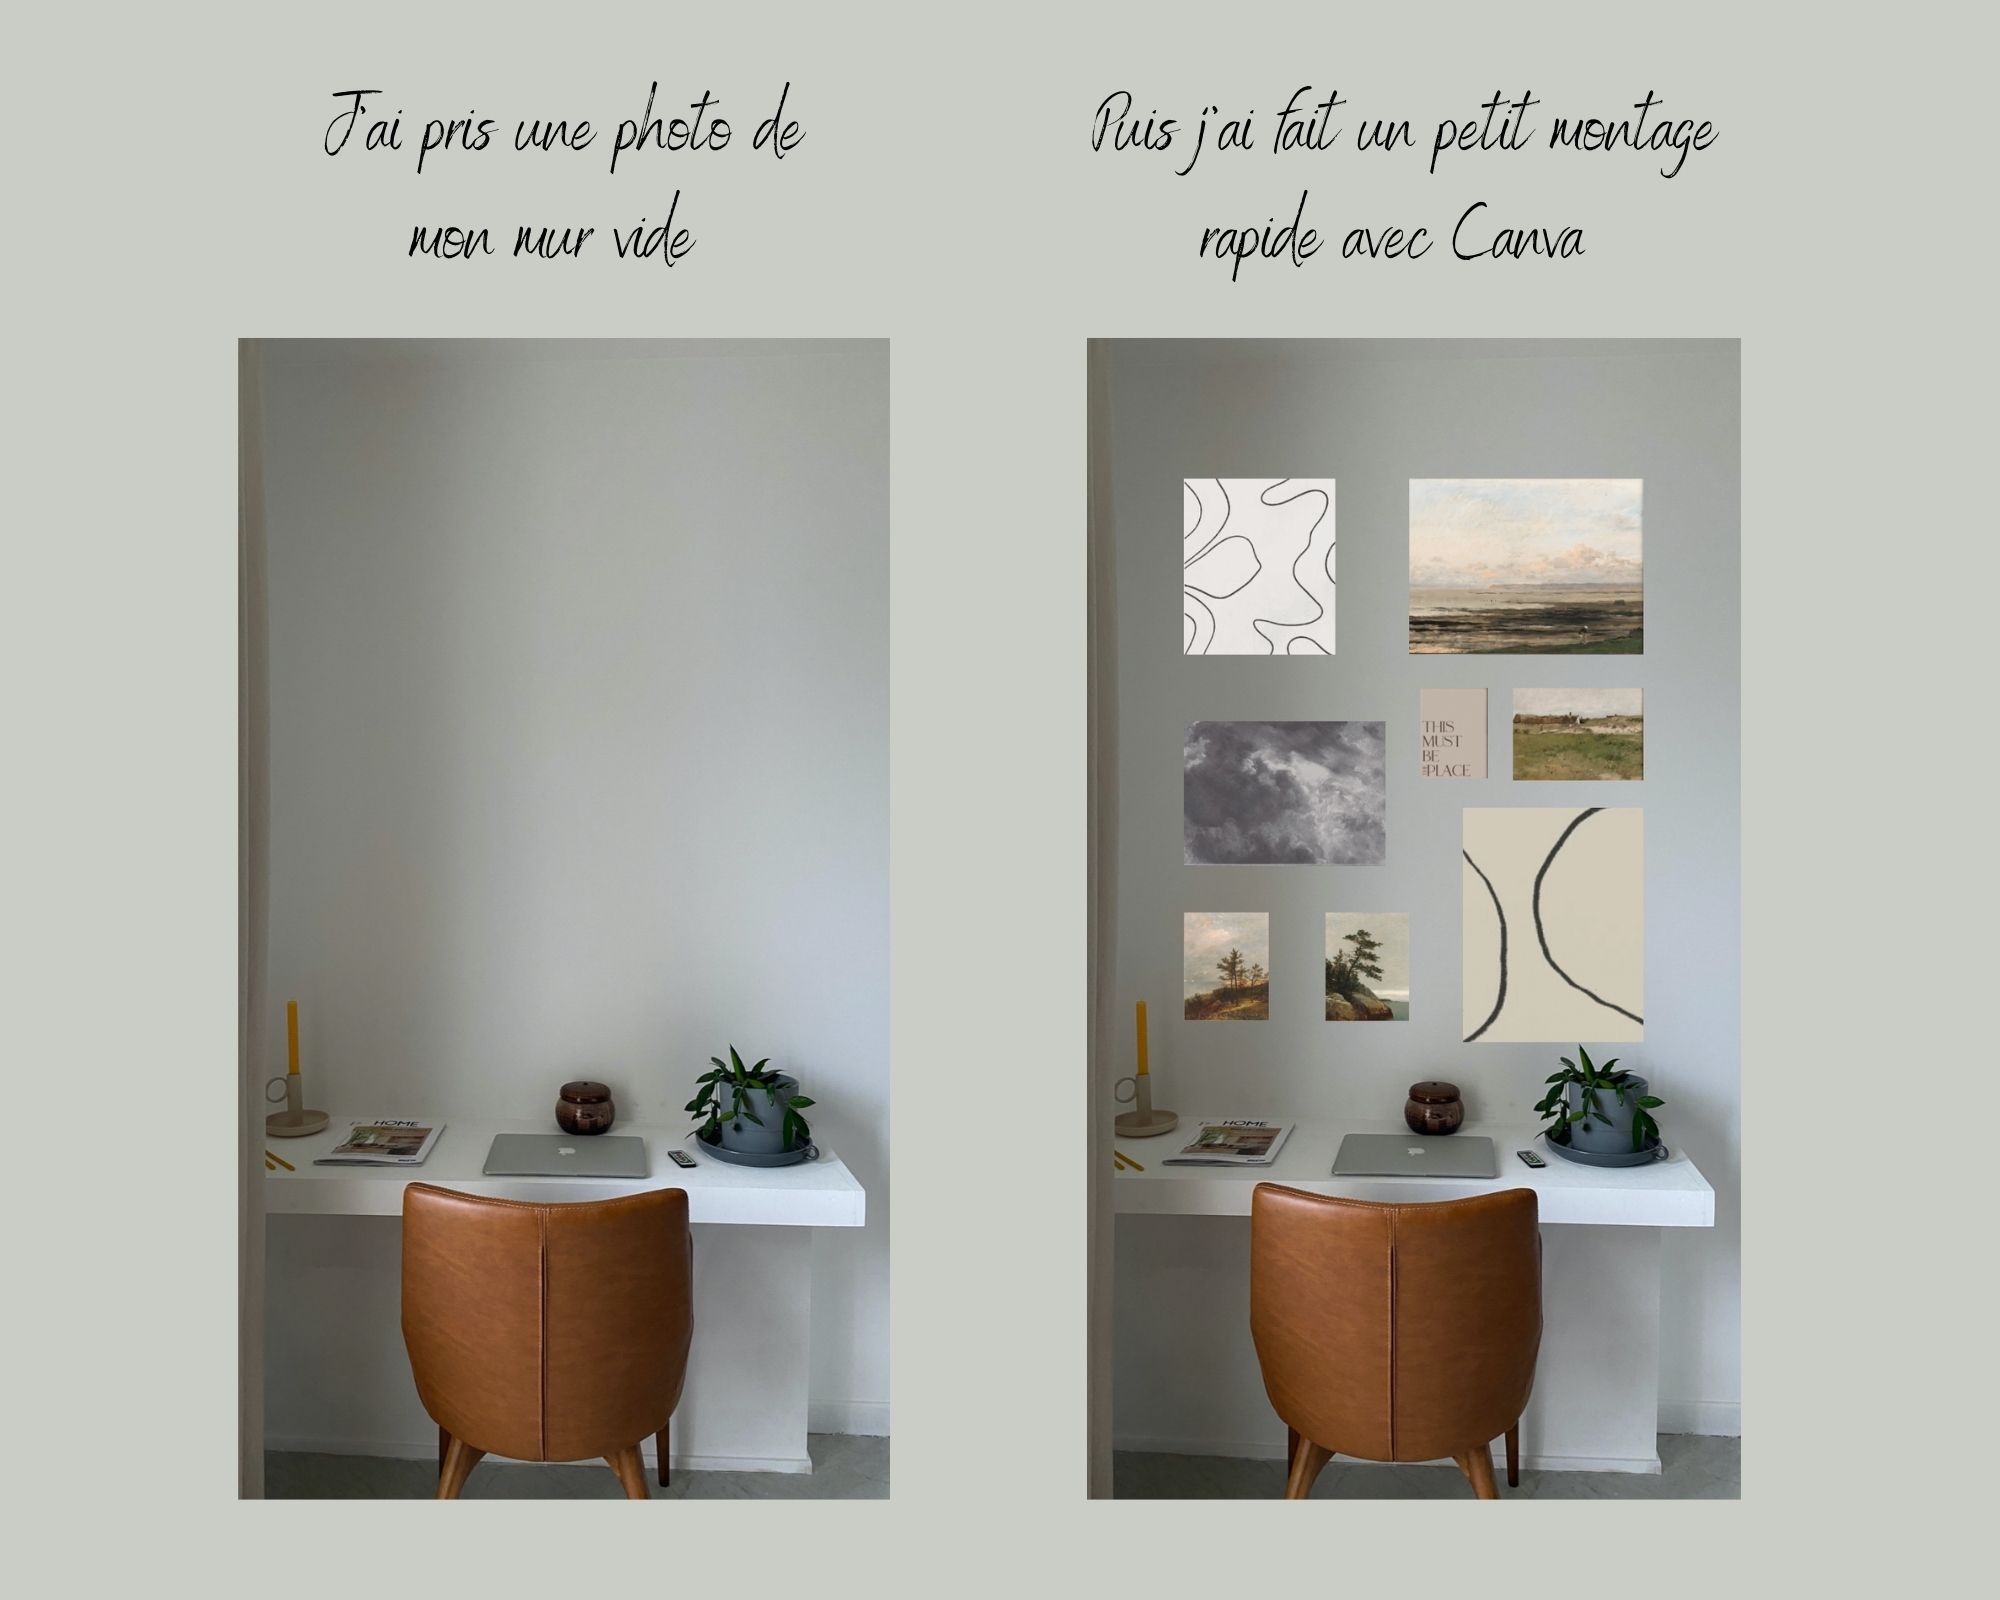 montage design sur Canva.fr